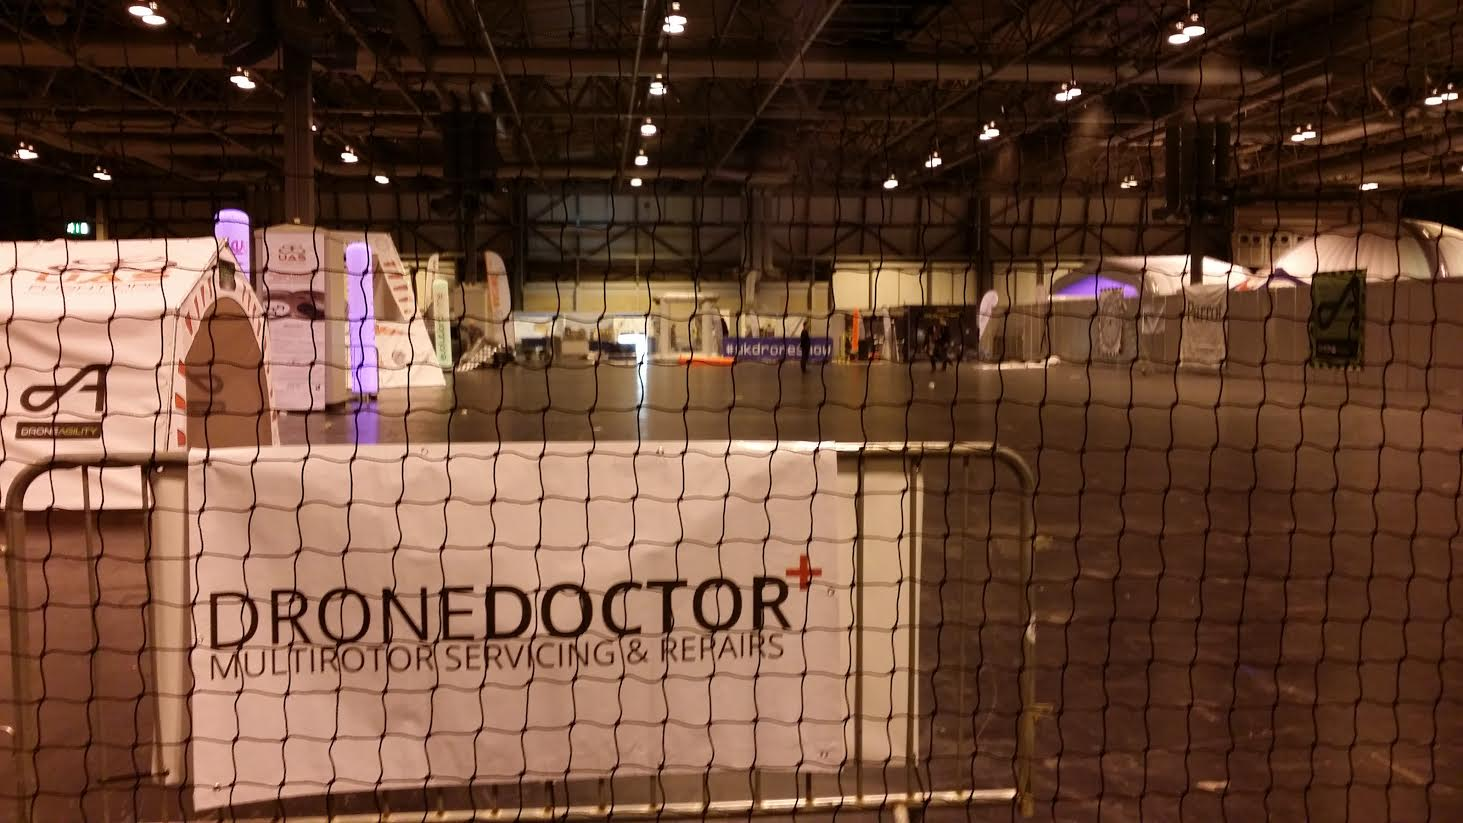 Drone Doctor banner in the main flying arena at the UK Drone Show 2015 NEC Birmingham